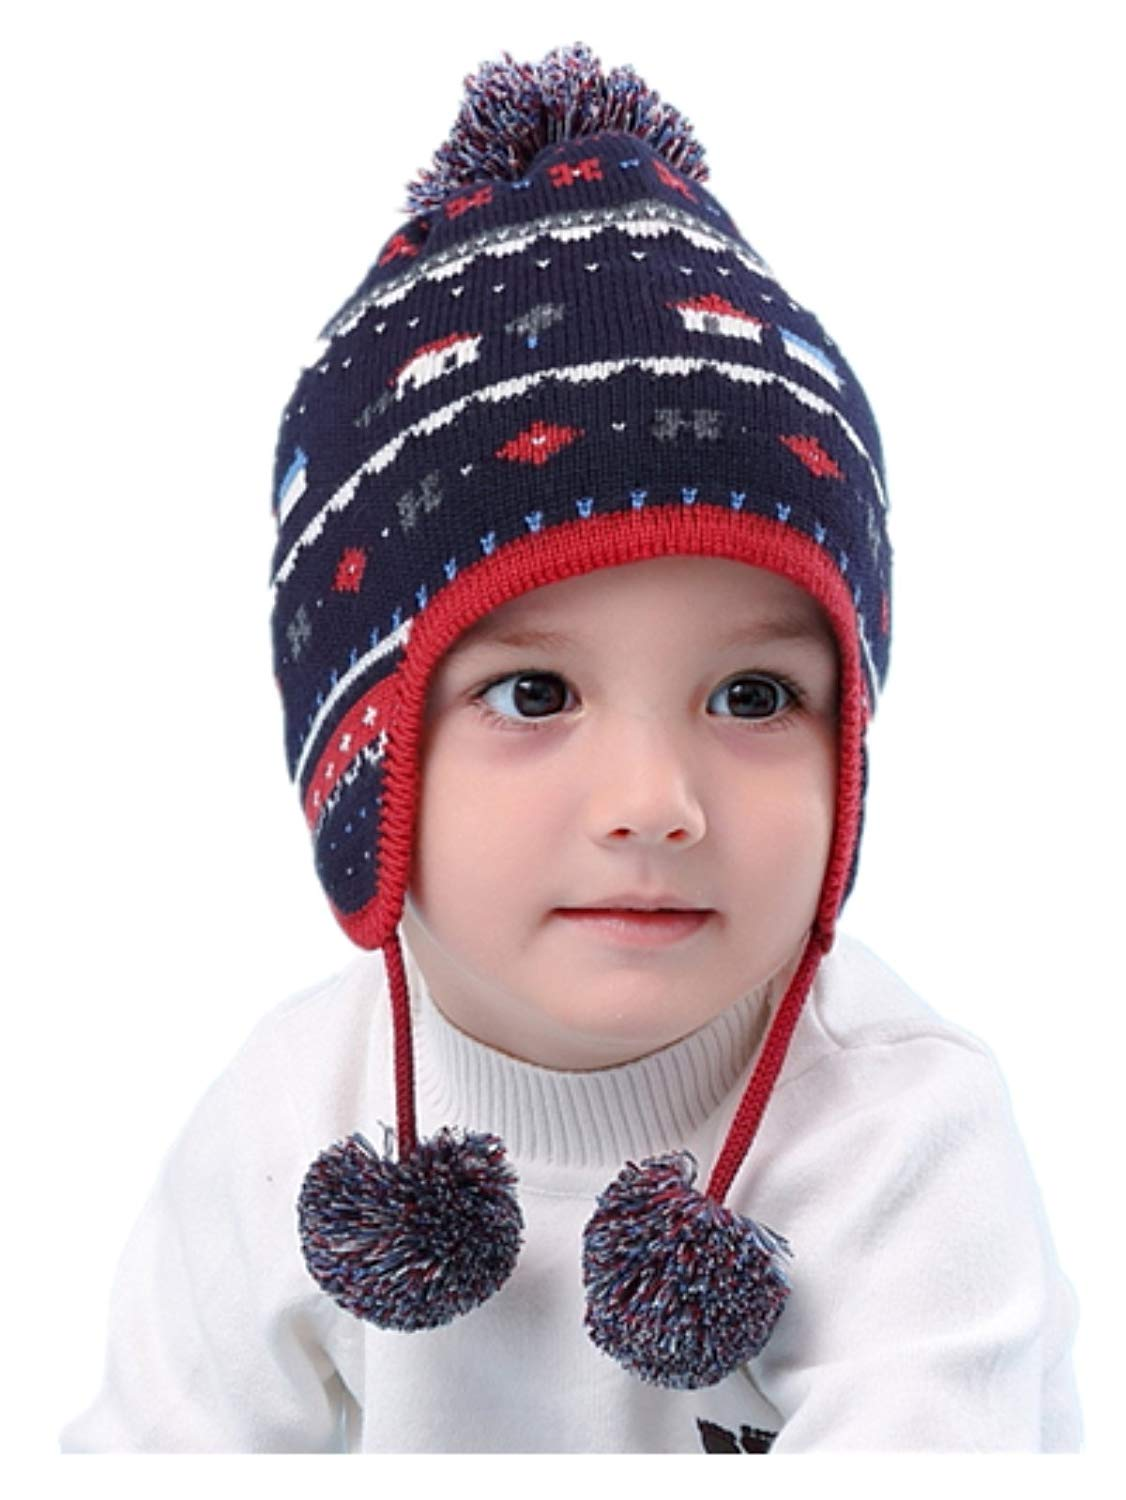 ceb8a4f654c125 Get Quotations · LLmoway Baby Toddler Infant Knit Hat Earflap Beanie Cotton Hat  Warm Pom Cap